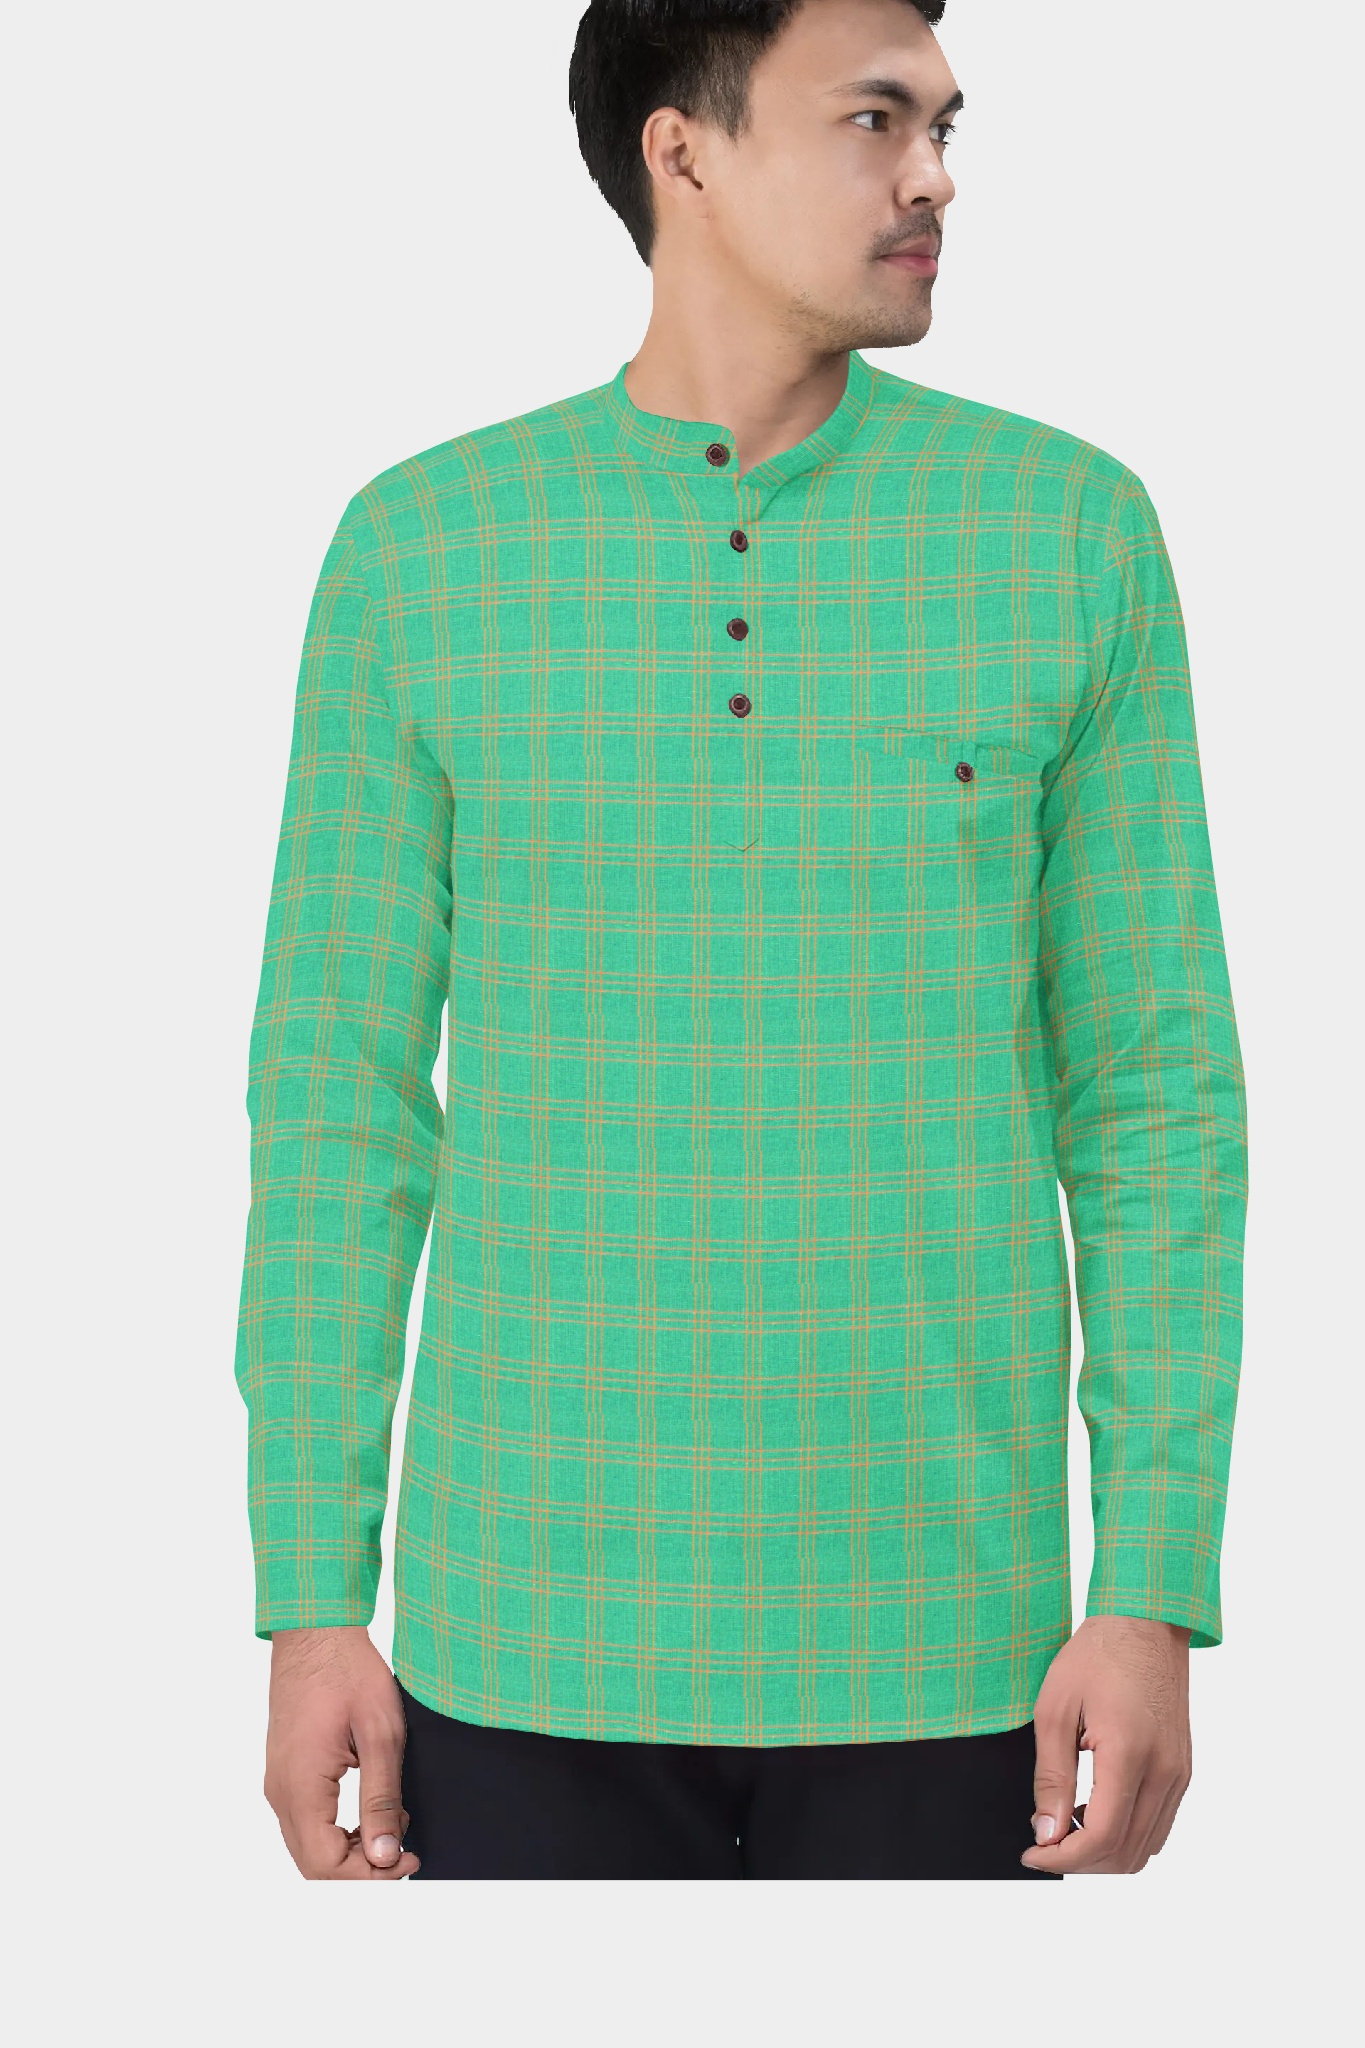 /home/customer/www/fabartcraft.com/public_html/uploadshttps://www.shopolics.com/uploads/images/medium/Green-Yellow-Cotton-Short-Kurta-35441.jpg